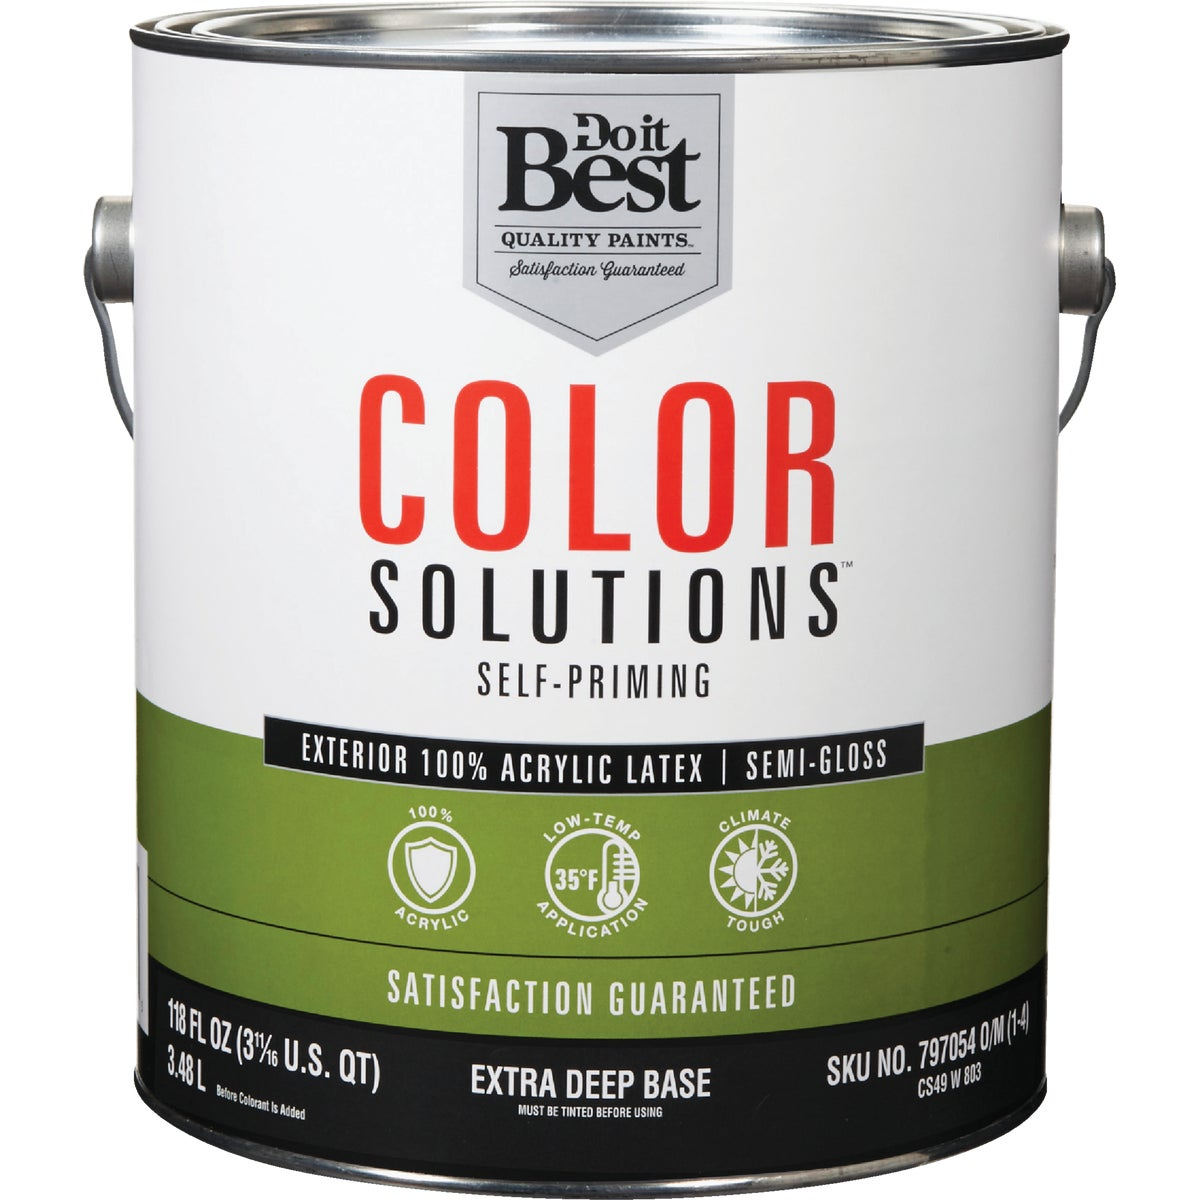 EXT S/G EX DEEP BS PAINT - CS49W0803-16 by Do it Best